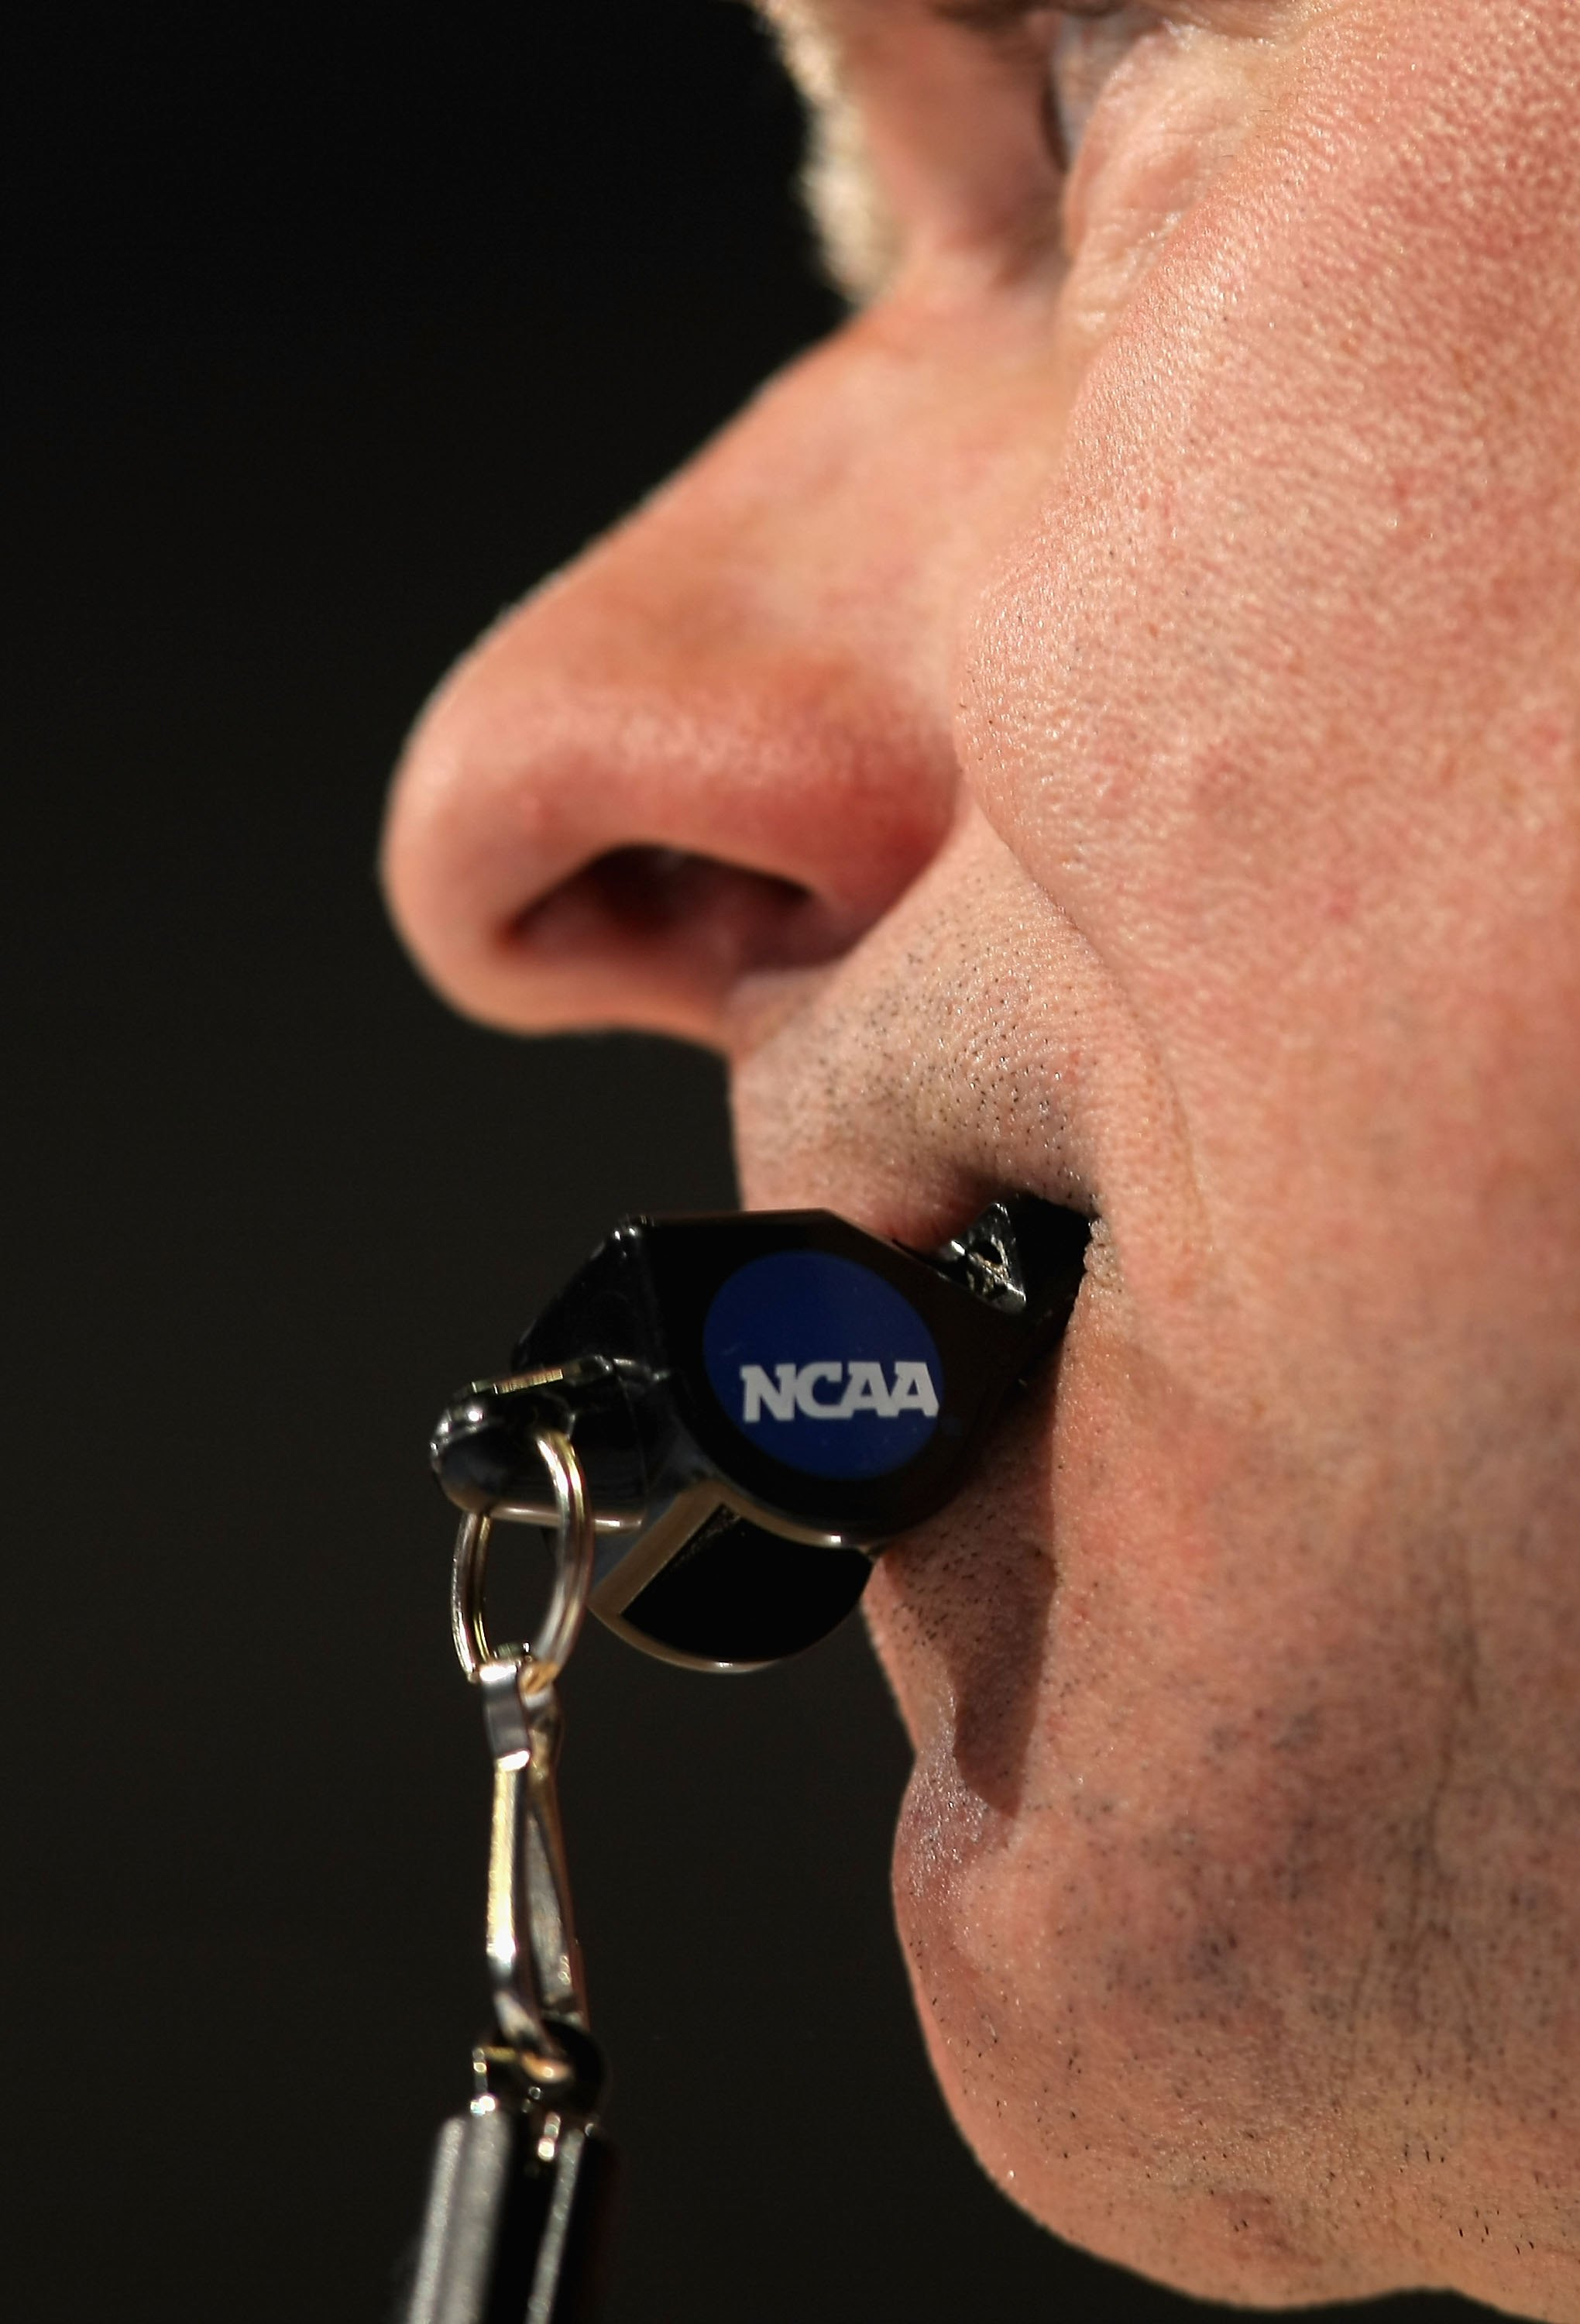 A referee holds his whistle during the second round game of the South Regional between the Pittsburgh Panthers and the Michigan State Spartans on March 22, 2008 in Denver, Colorado.